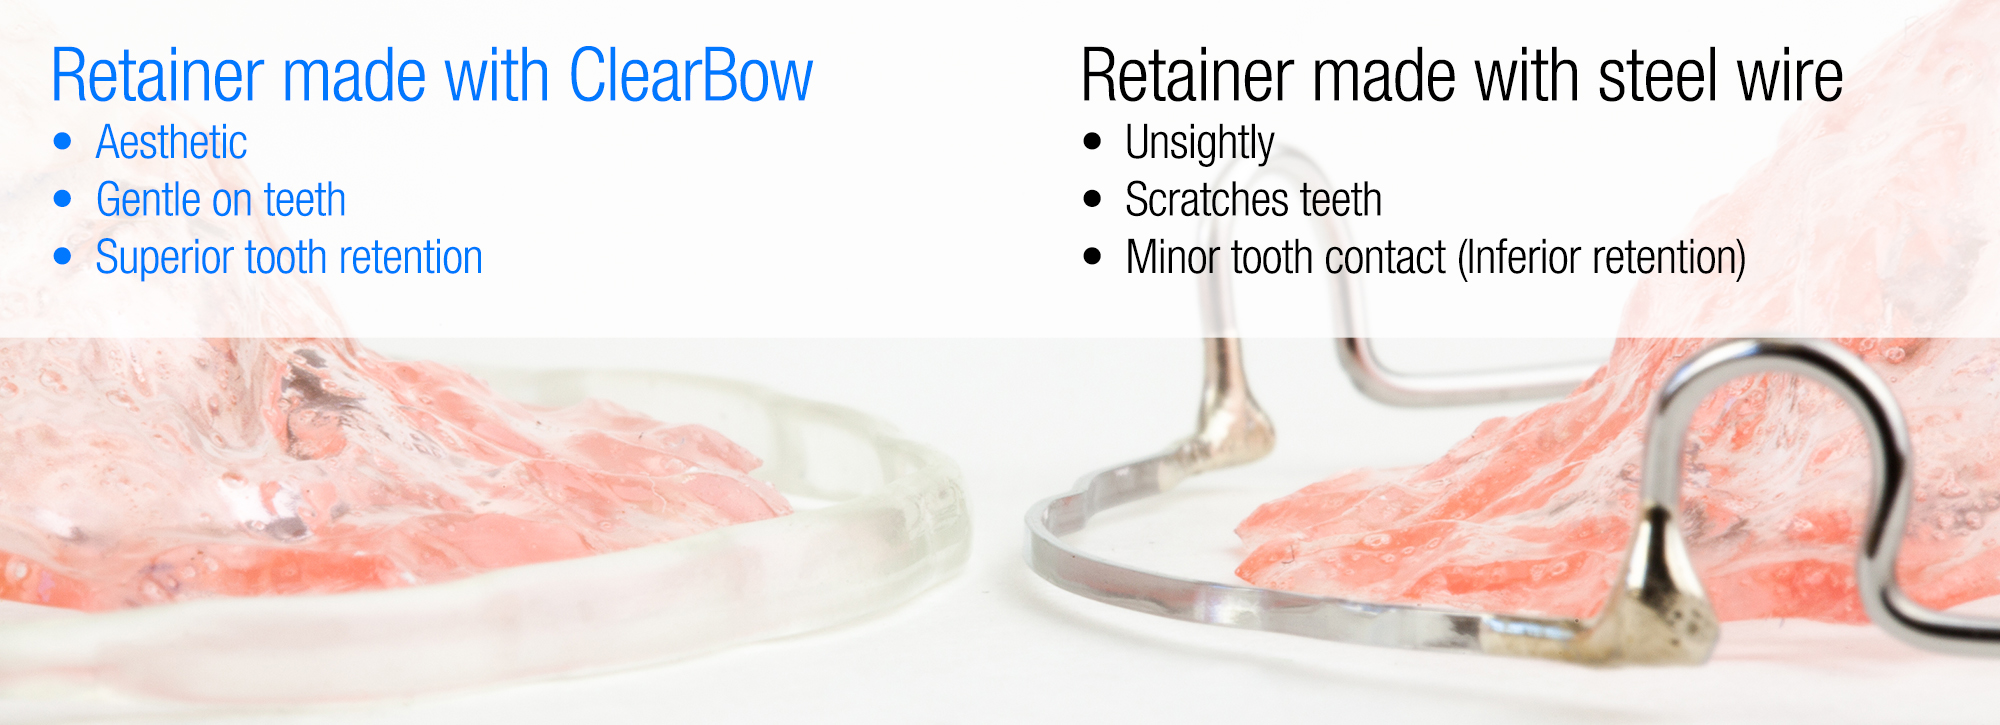 ClearBow Hawley Retainer - Clear Retainers After Braces